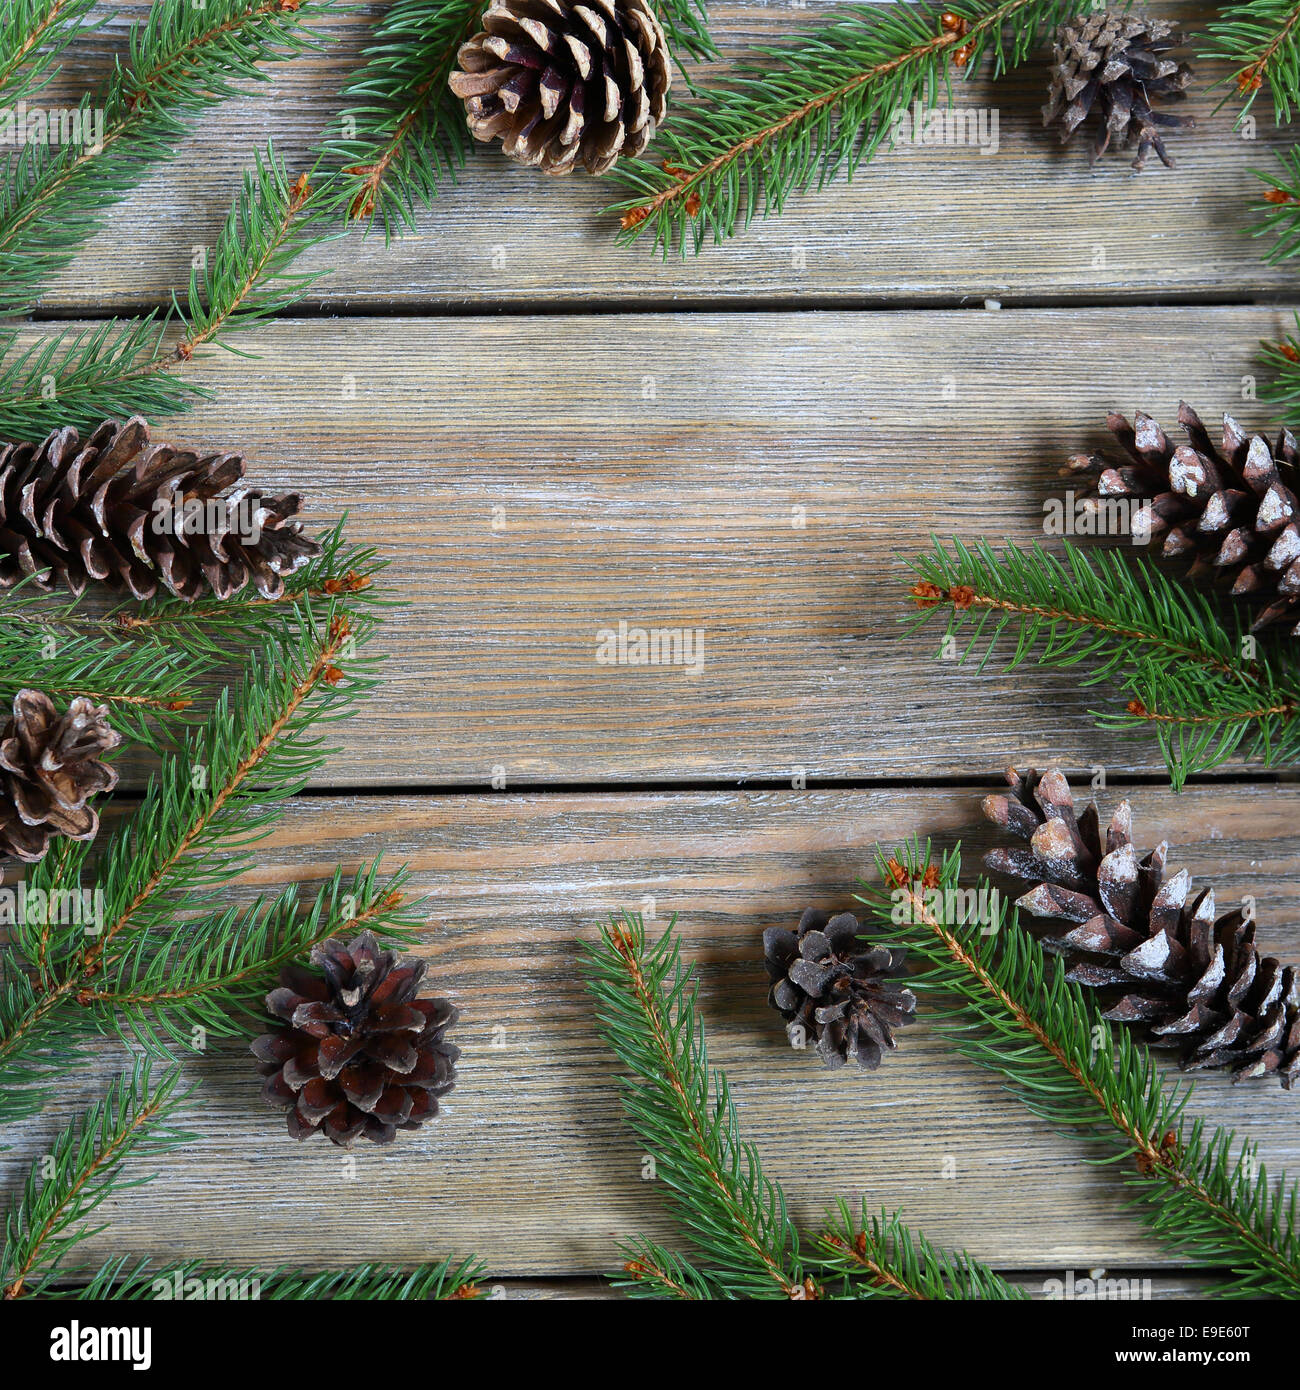 Christmas frame with pine branch and cones on wooden boards, Xmas - Stock Image